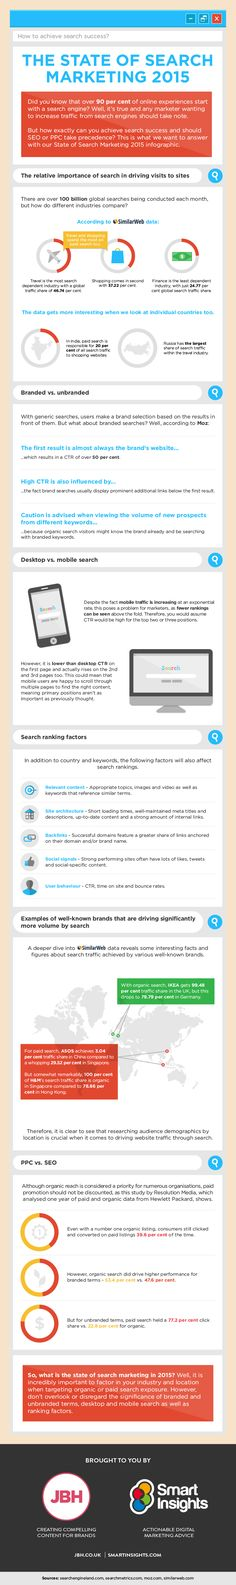 The State of Search Marketing 2015 - #infographic #Searchengineoptimization vs pay per click (PPC)